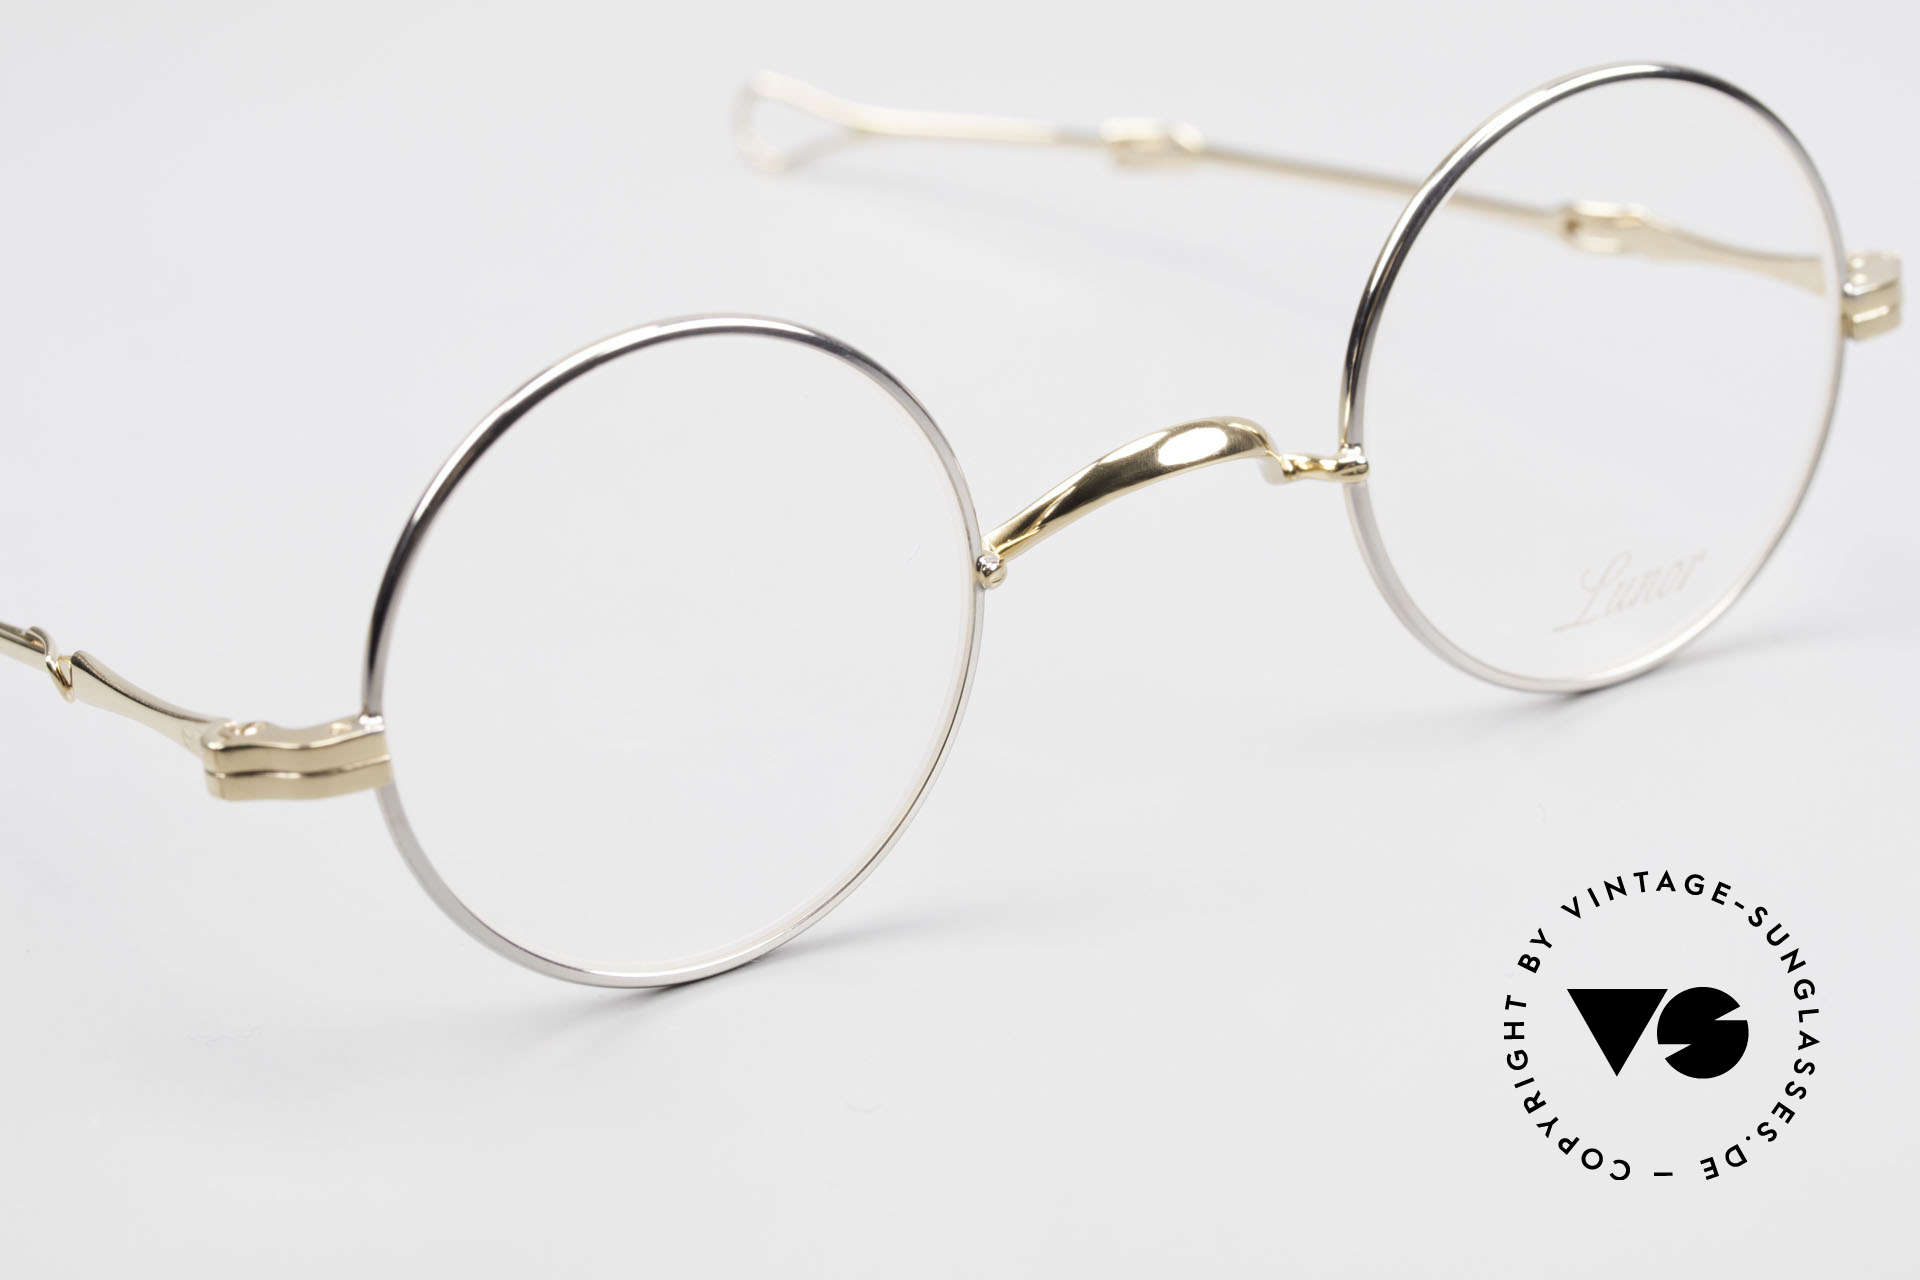 Lunor I 12 Telescopic Slide Temples Telescopic Specs, unworn RARITY (for all lovers of quality) from app. 1999, Made for Men and Women